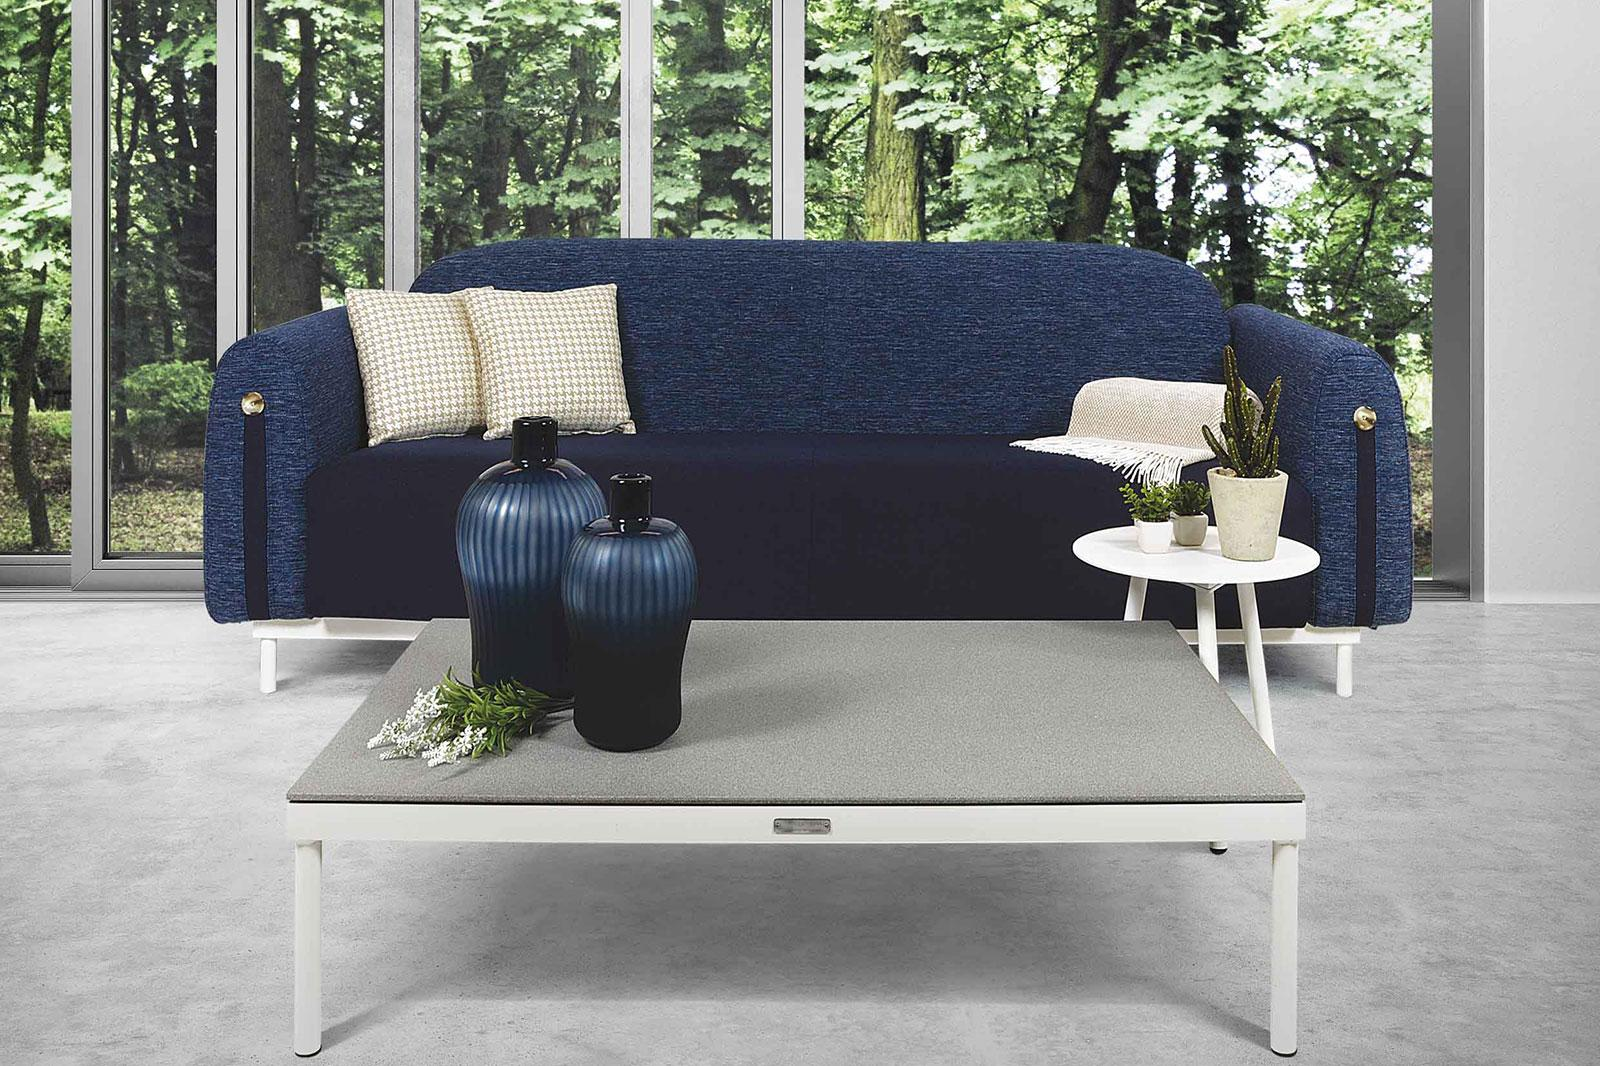 Create your patio furniture set with our contemporary style garden sofa. Aluminium frame and high quality fabric covering. Free shipping. Several colours.